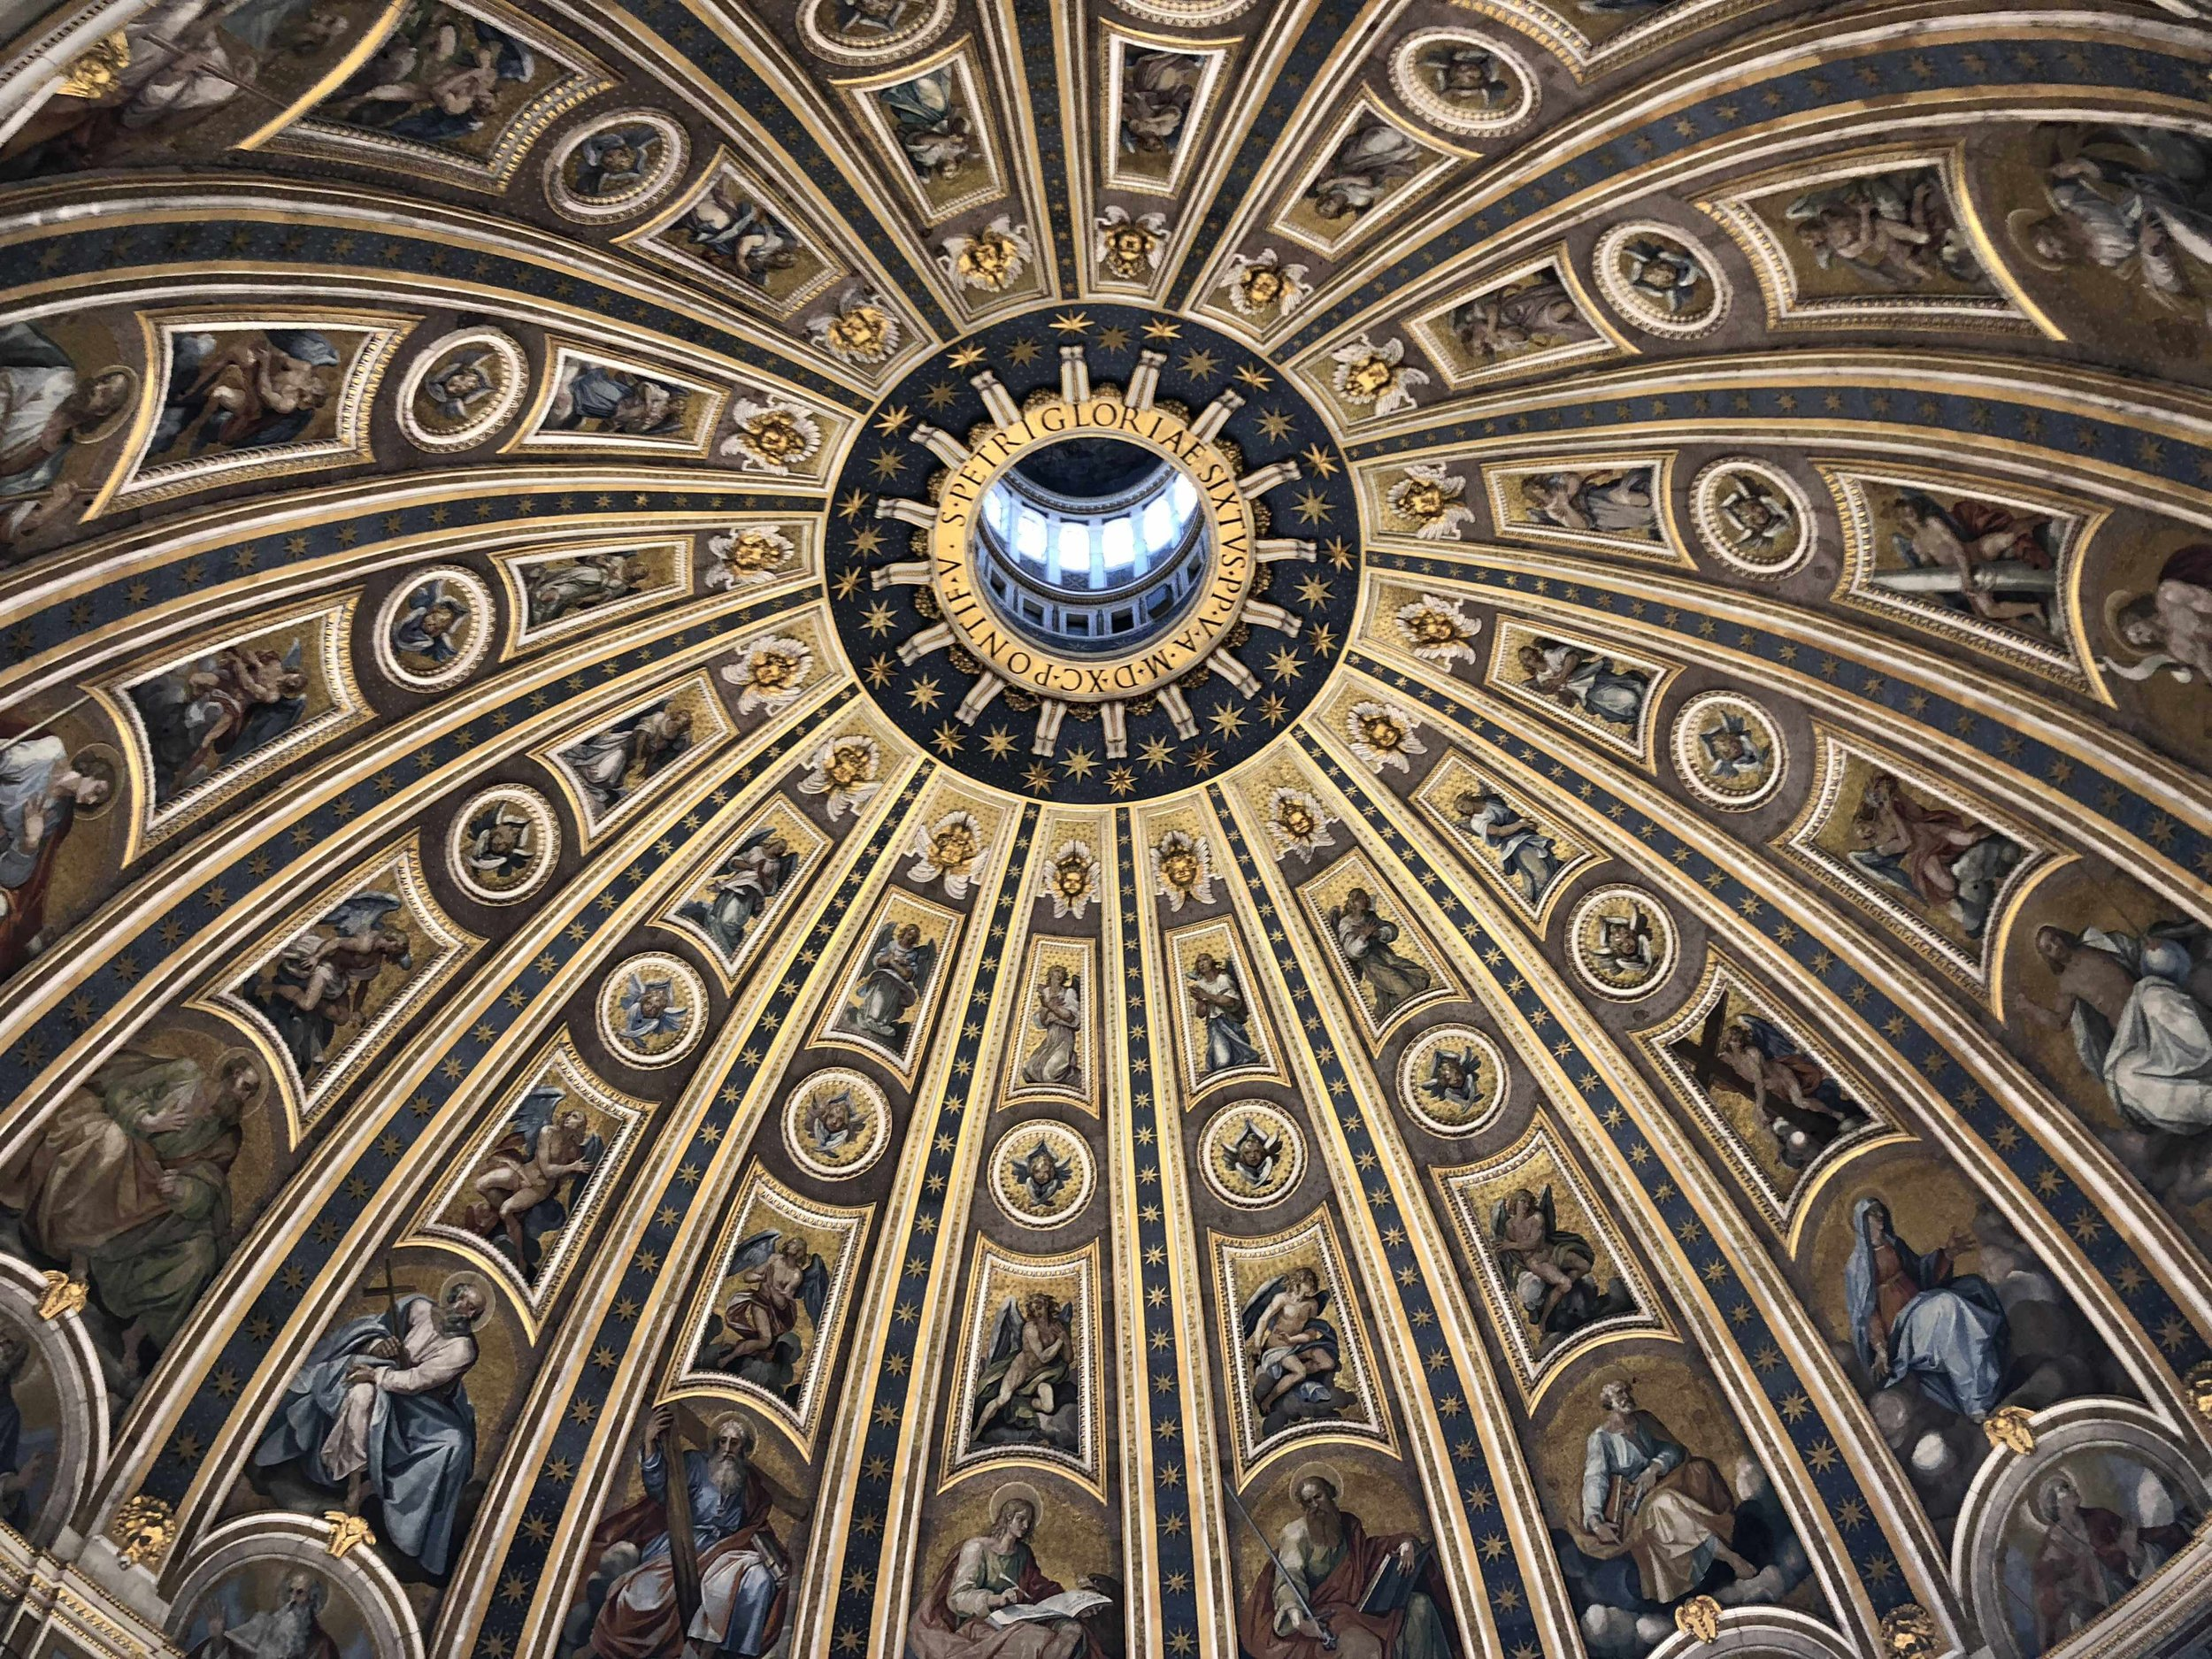 Completed in 1590, the interior of the Dome was dedicated the inner ring around the opening to Sixtus V. The Dome was concluded under the works of Giacomo della Porta and Domenico Fontana